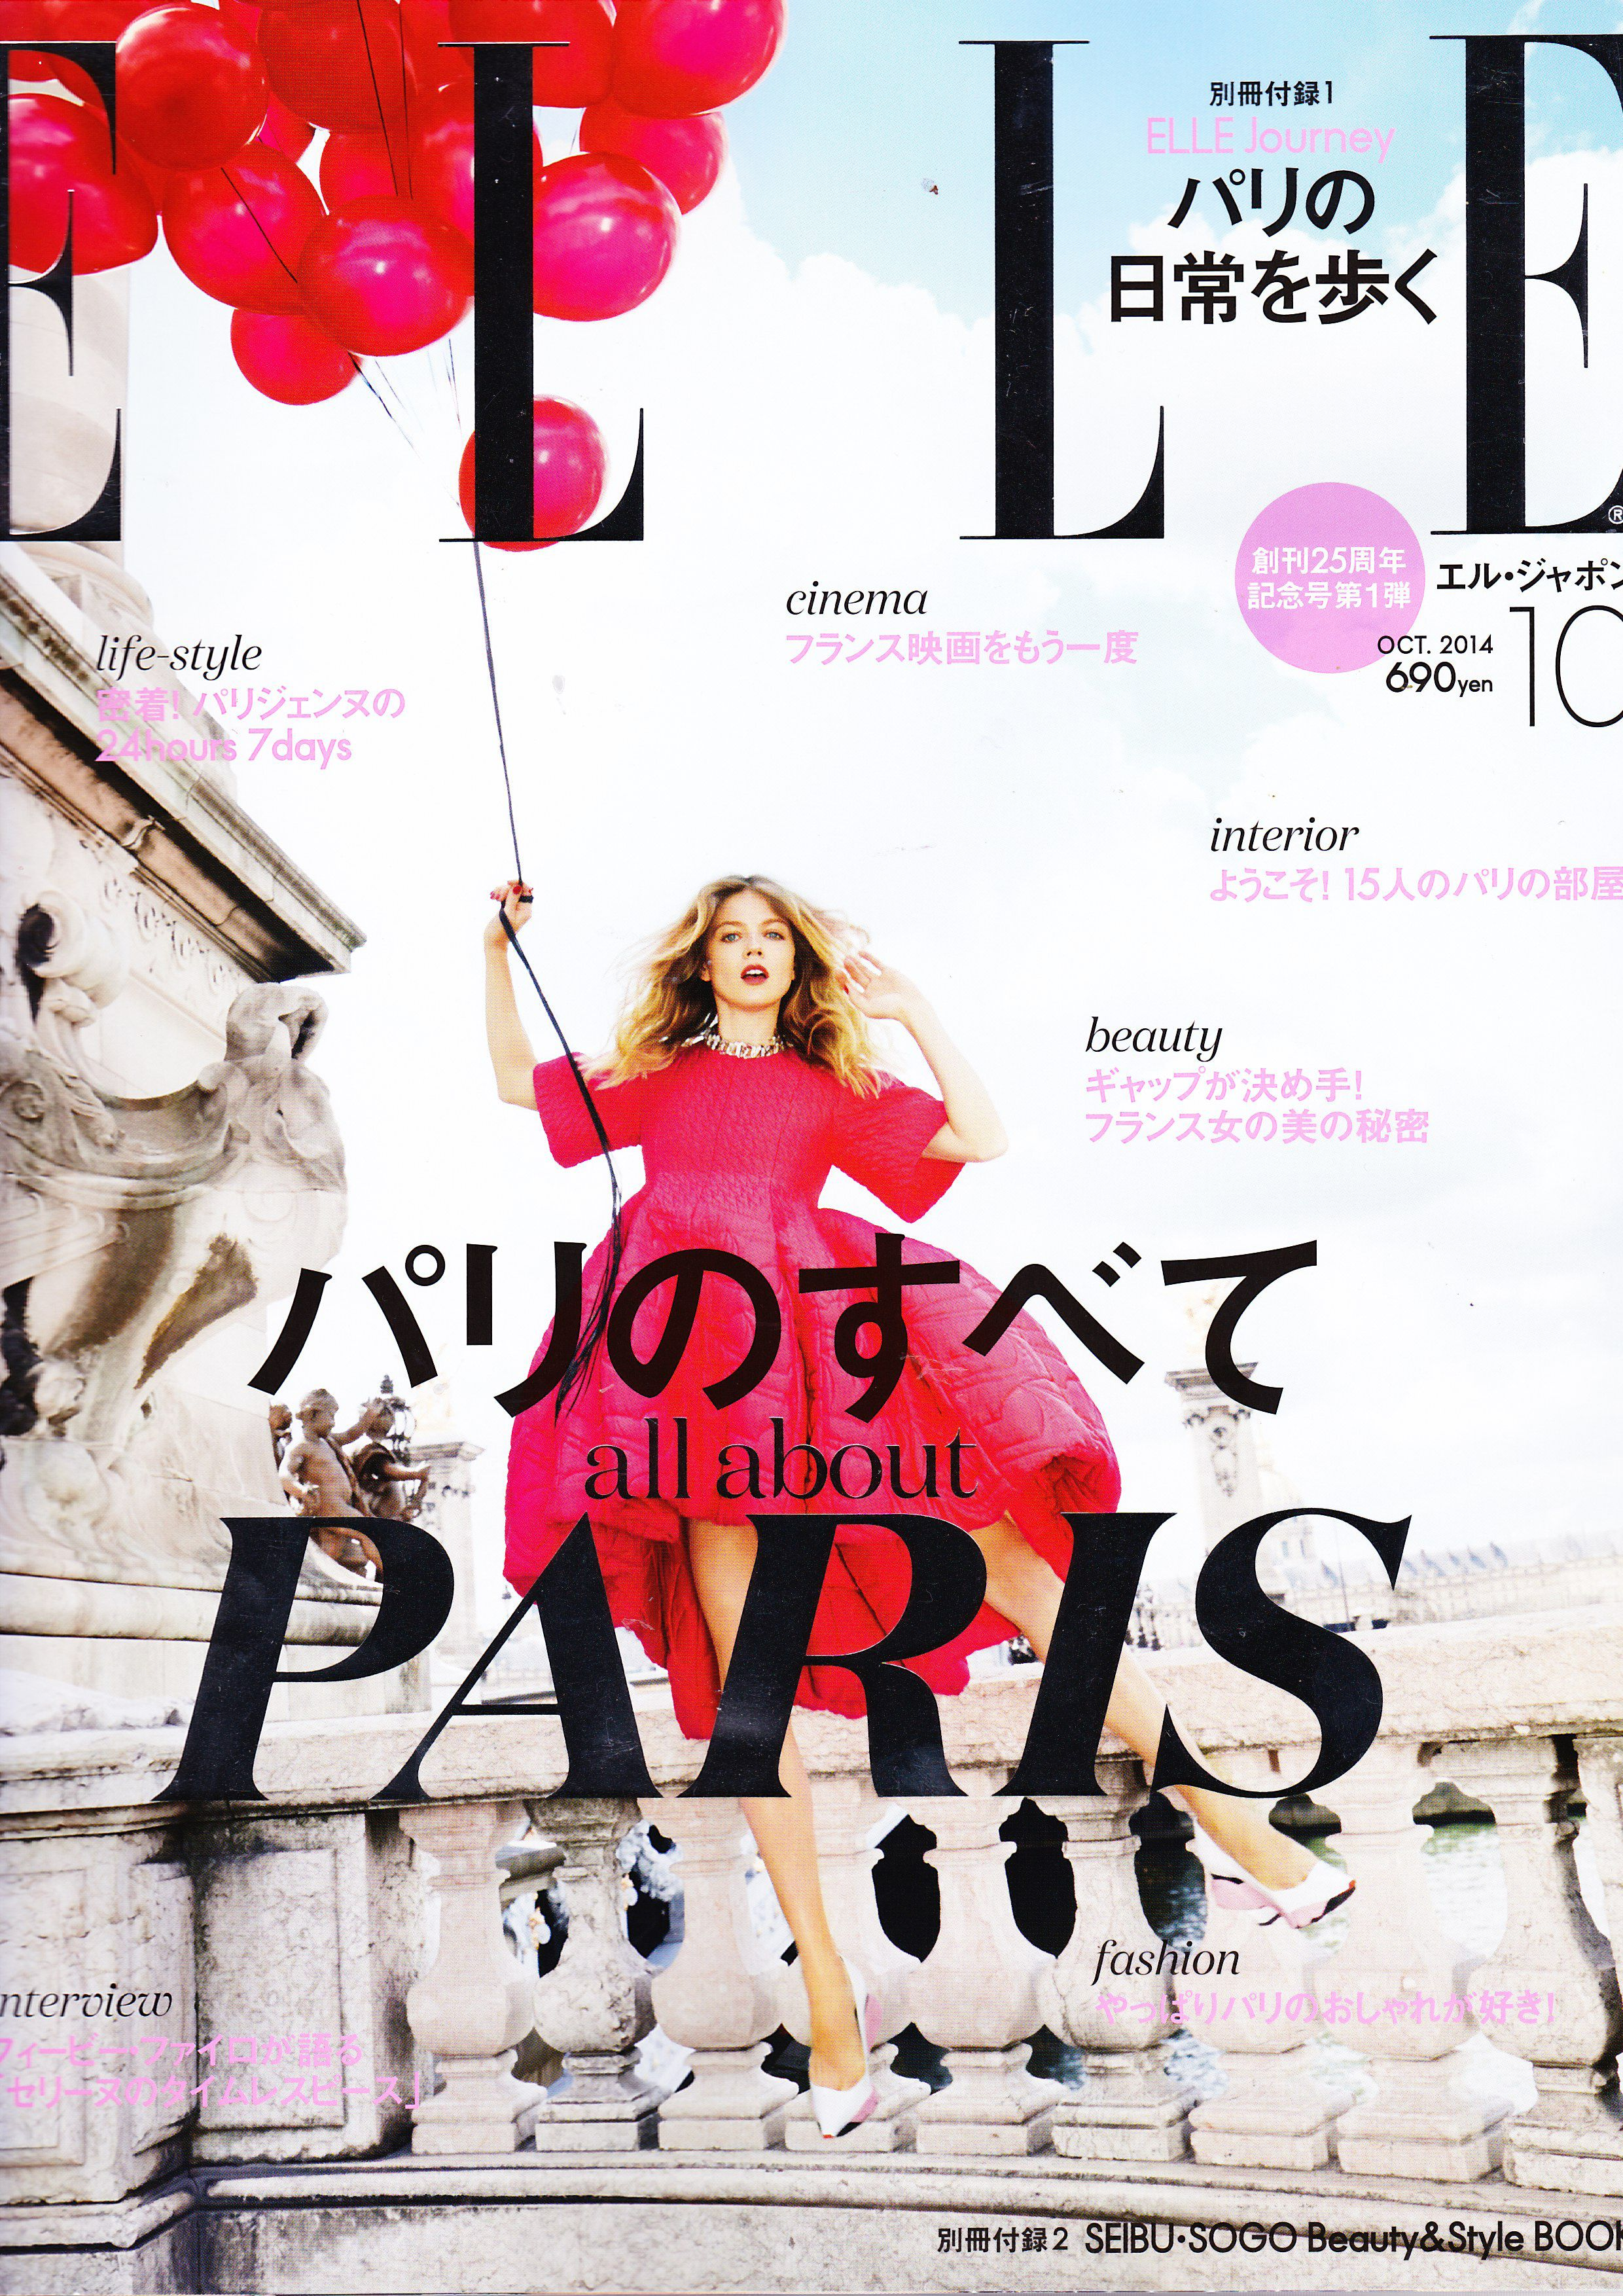 PLUME VOYAGE and Capsule de Plume in ELLE Magazine Japan, October 2014 Issue  #Home #Decor #InteriorDesign #ELLE #Japan